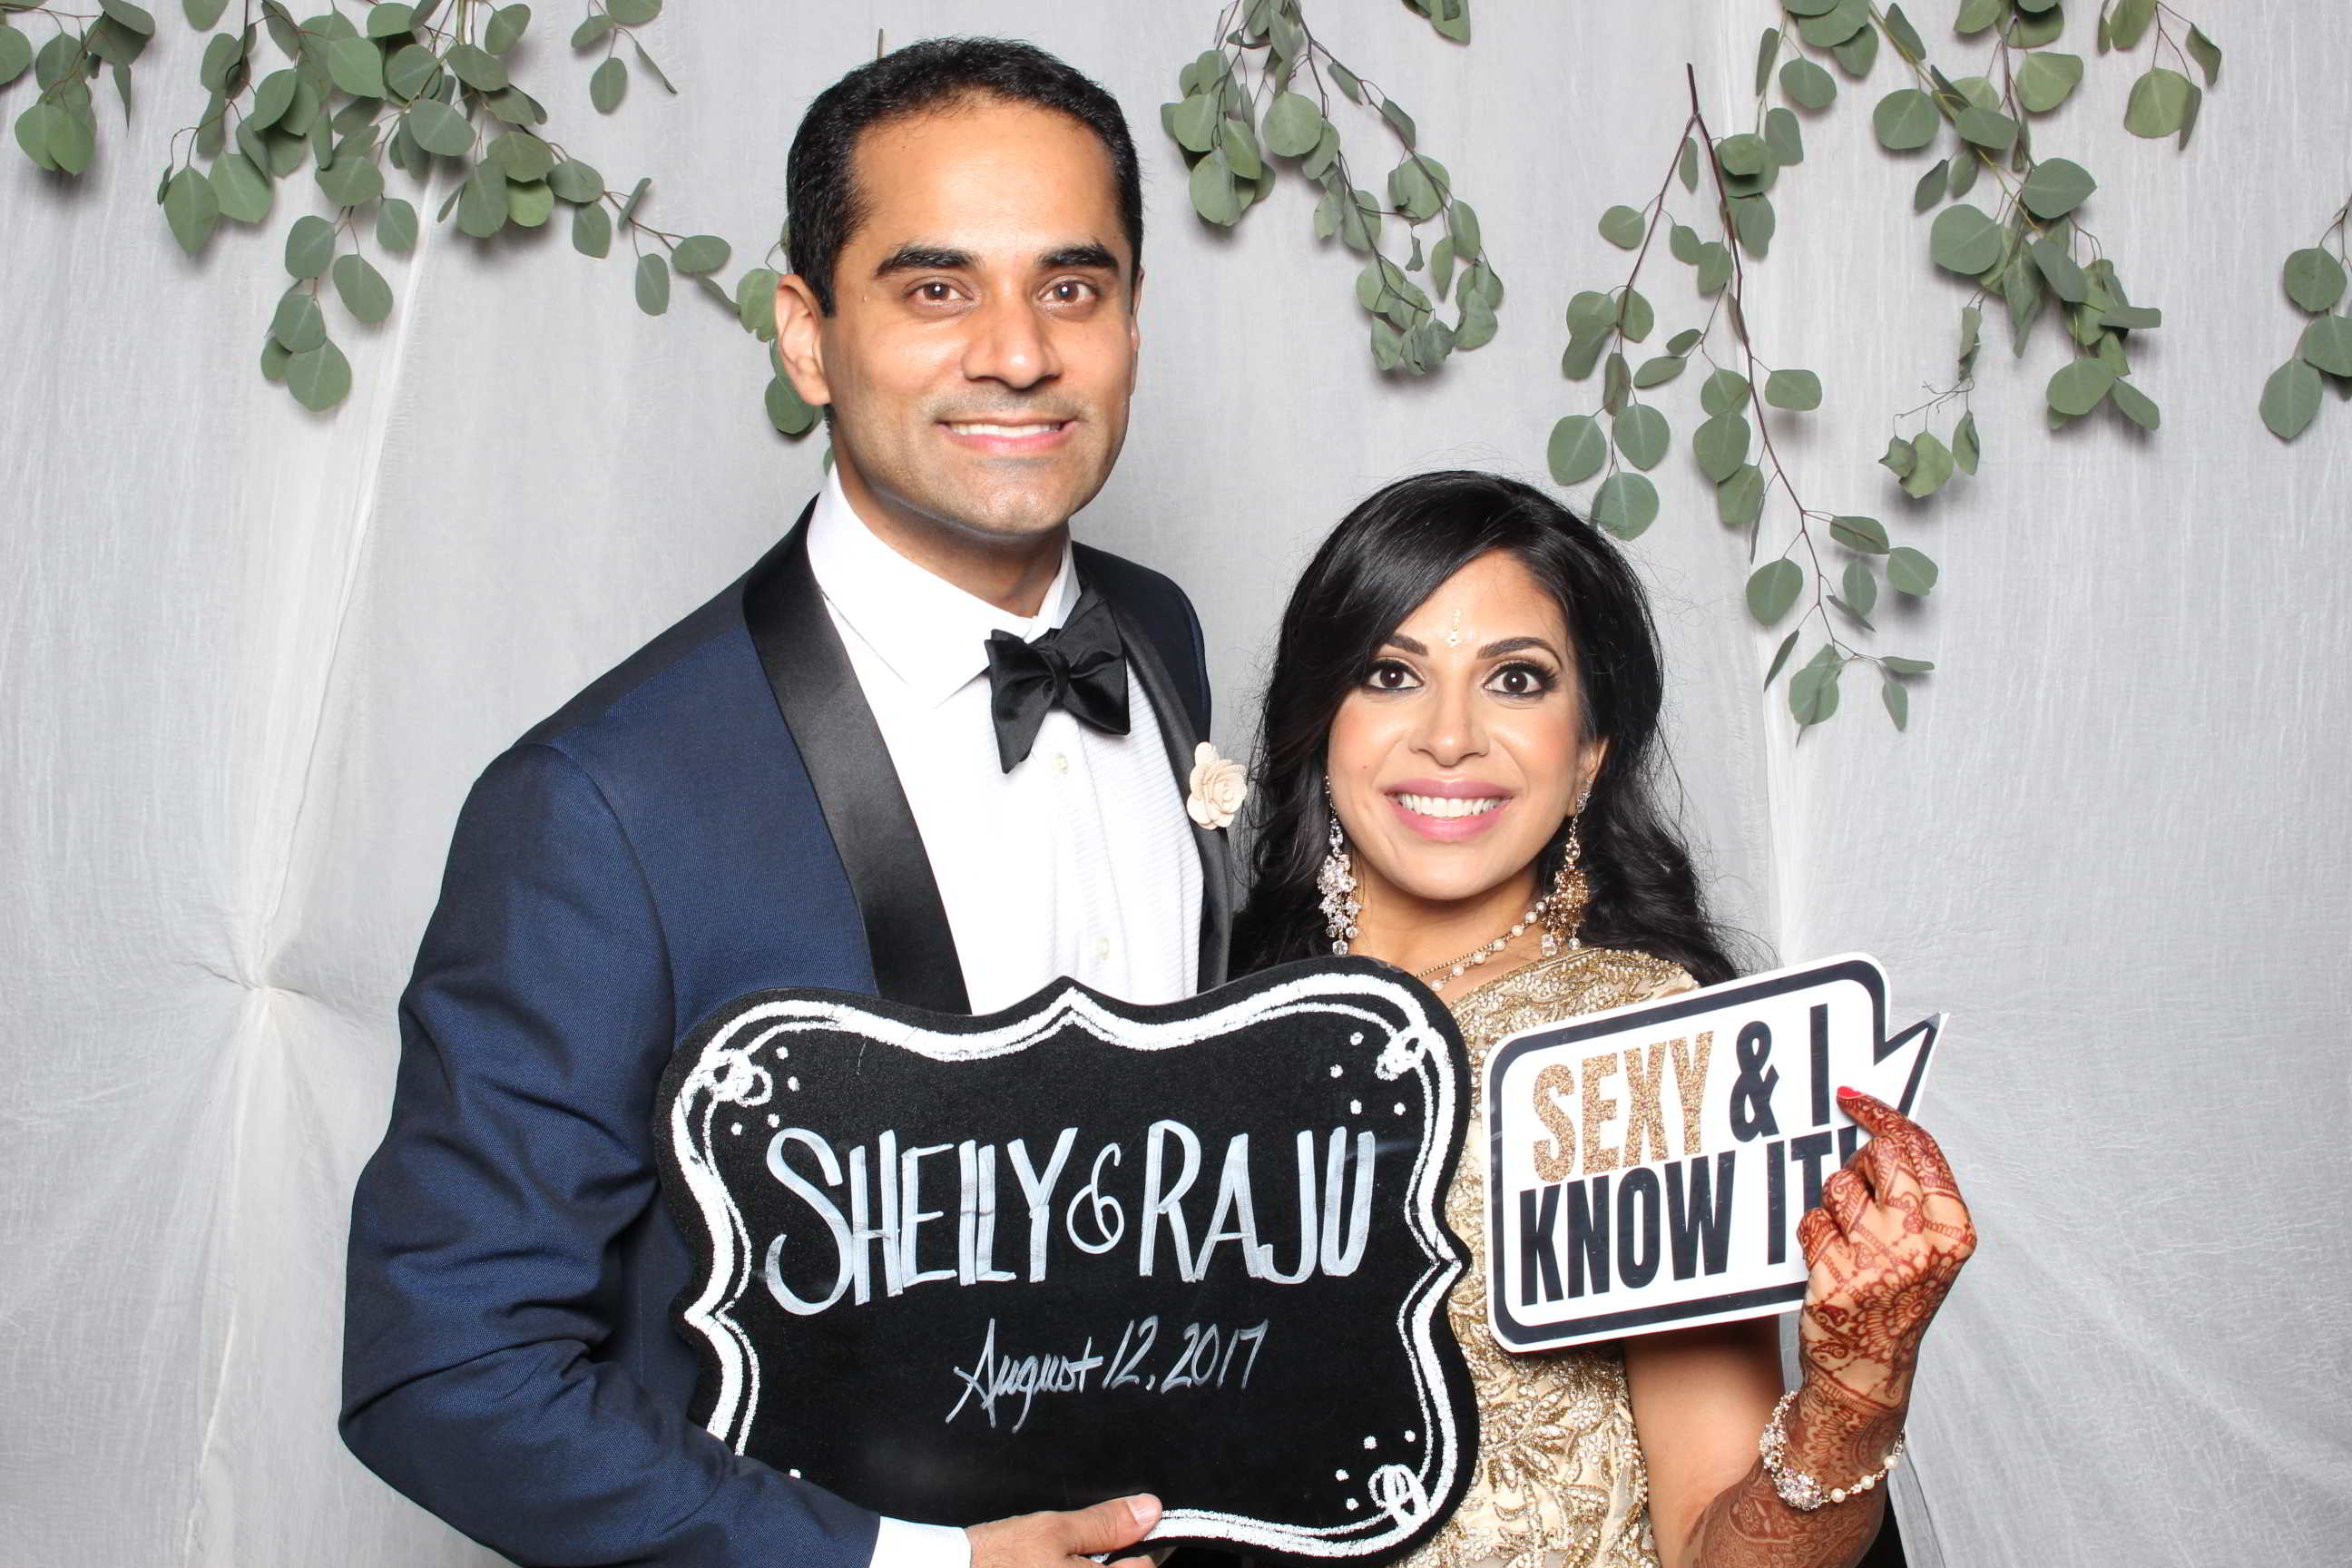 Indian Wedding Photo Booth